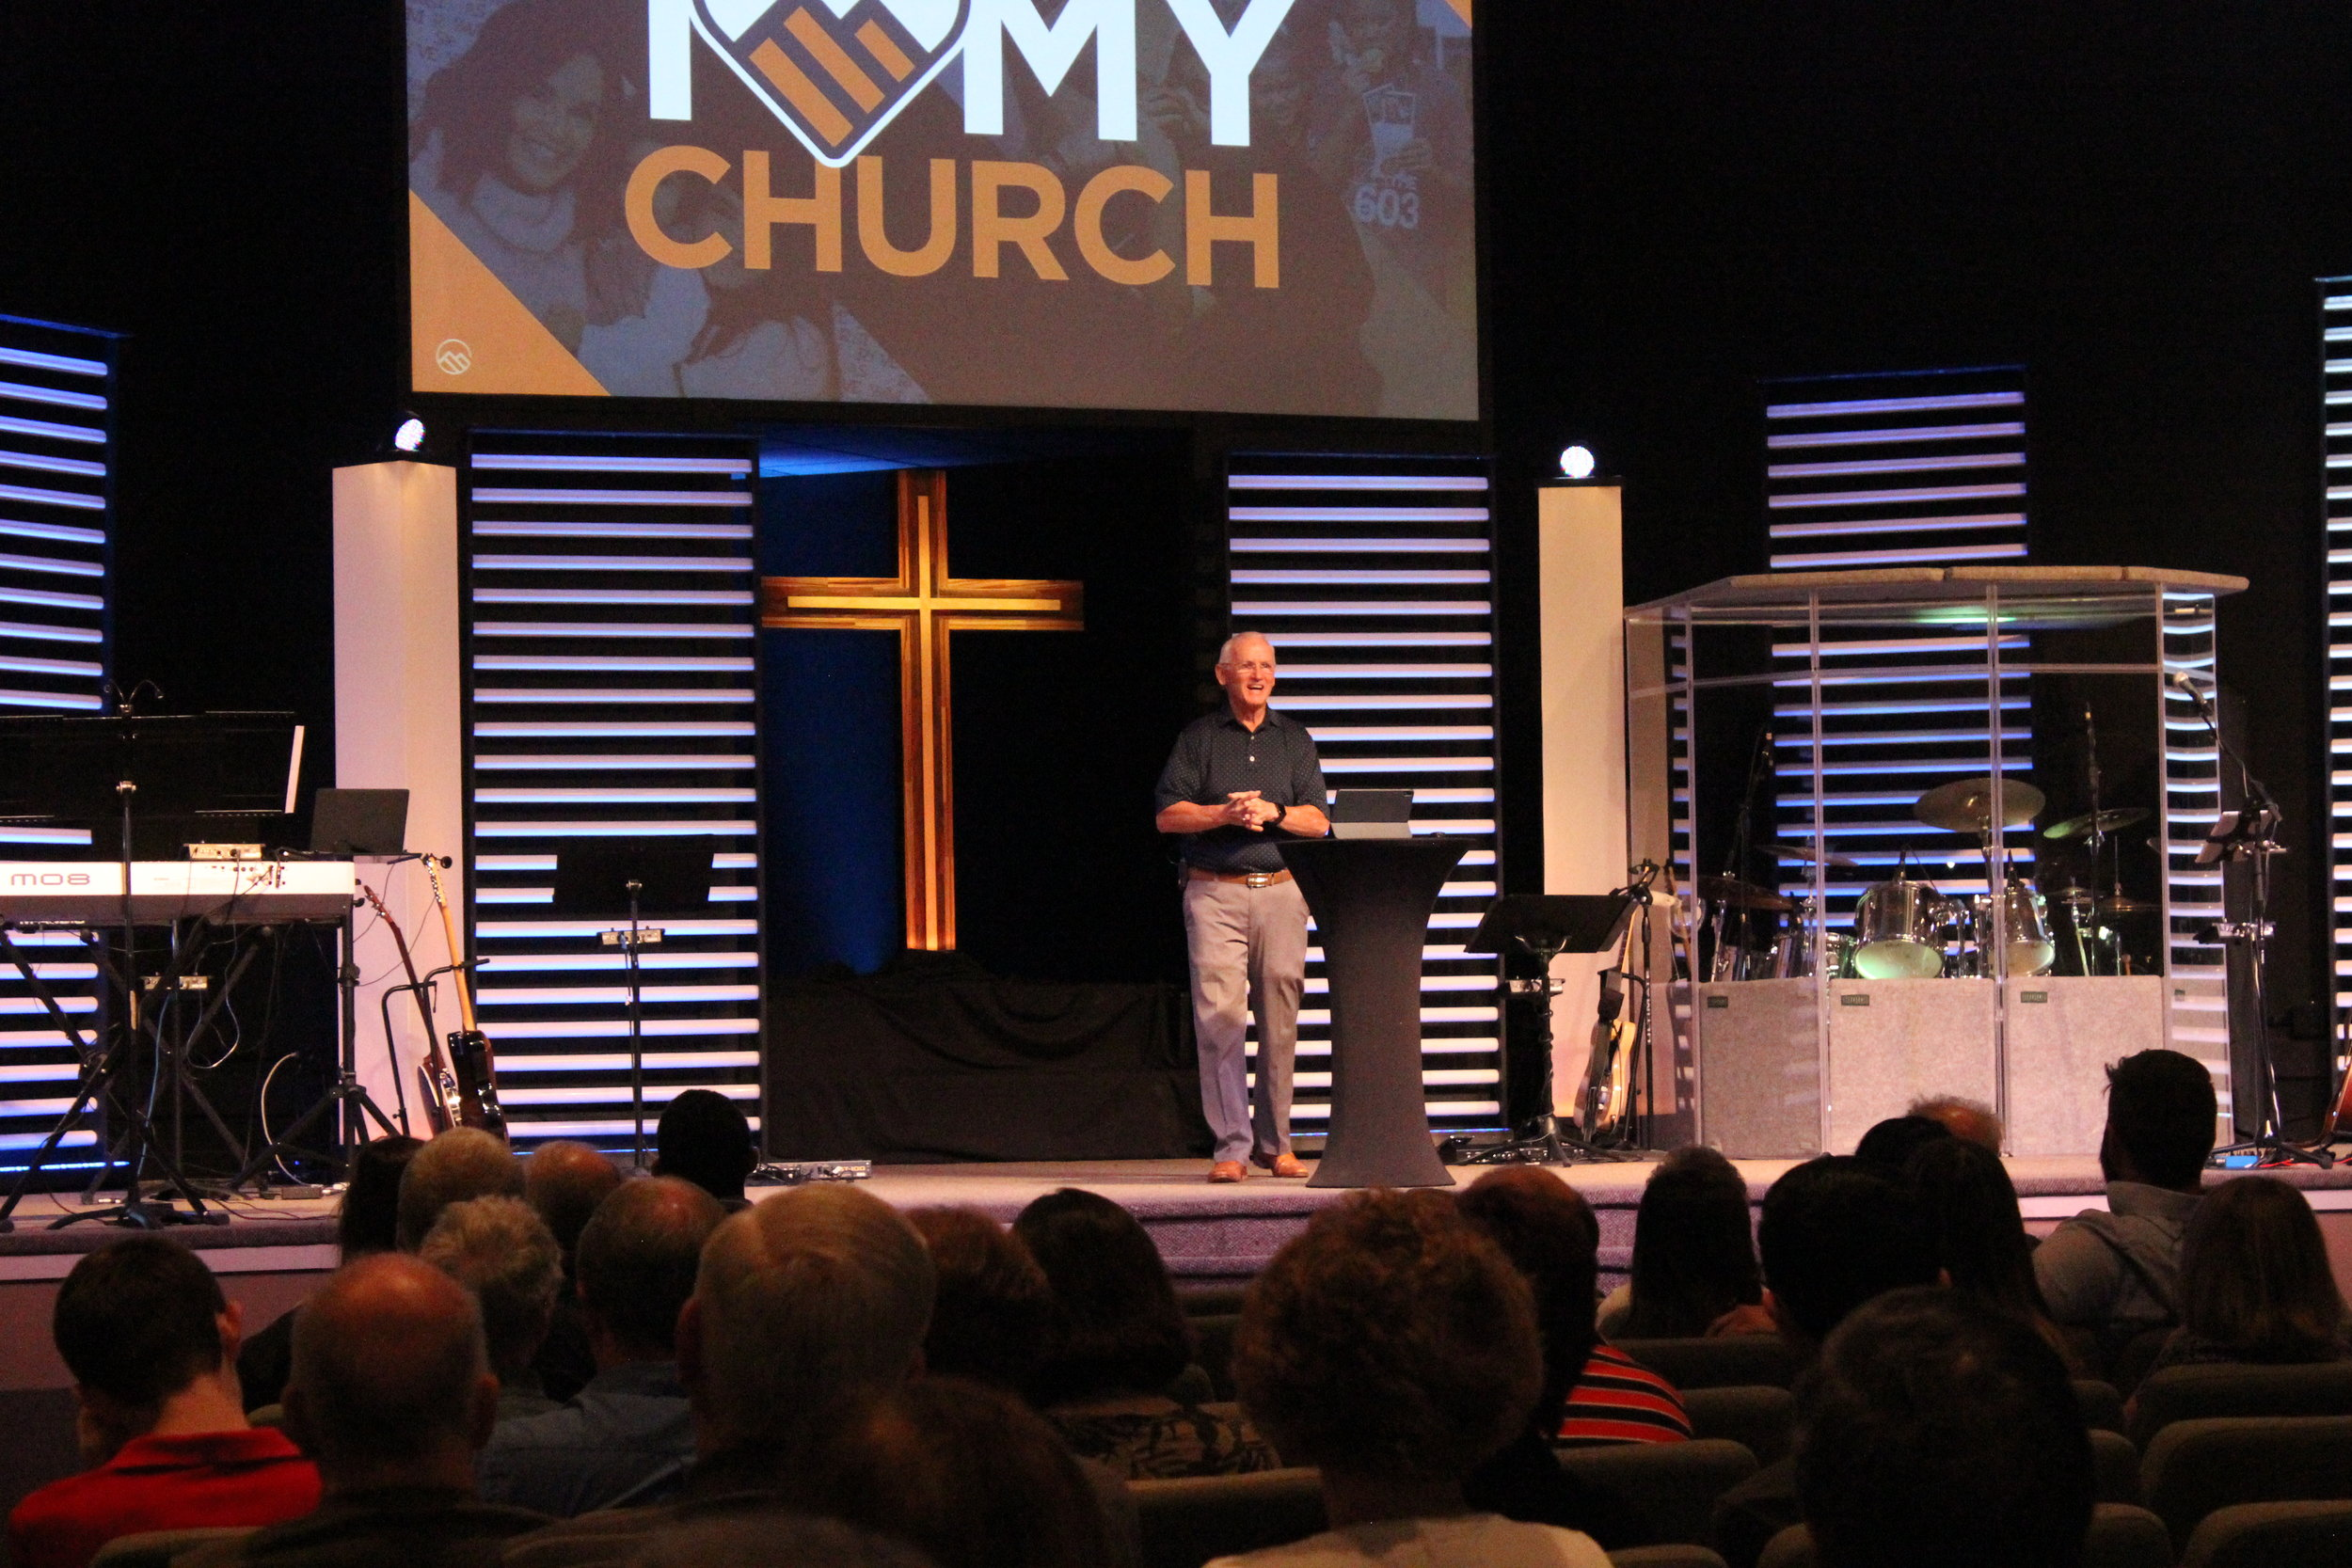 1. Attend a Service - Tower Hill Church is an exciting, up-lifting, life-giving, place for the entire family. With a welcoming atmosphere, it is easy for anyone to jump on board. With a live band leading us in worship and a challenging Jesus-centered message, everyone walks out feeling encouraged. The entire service lasts around 1 hour and 30 minutes.